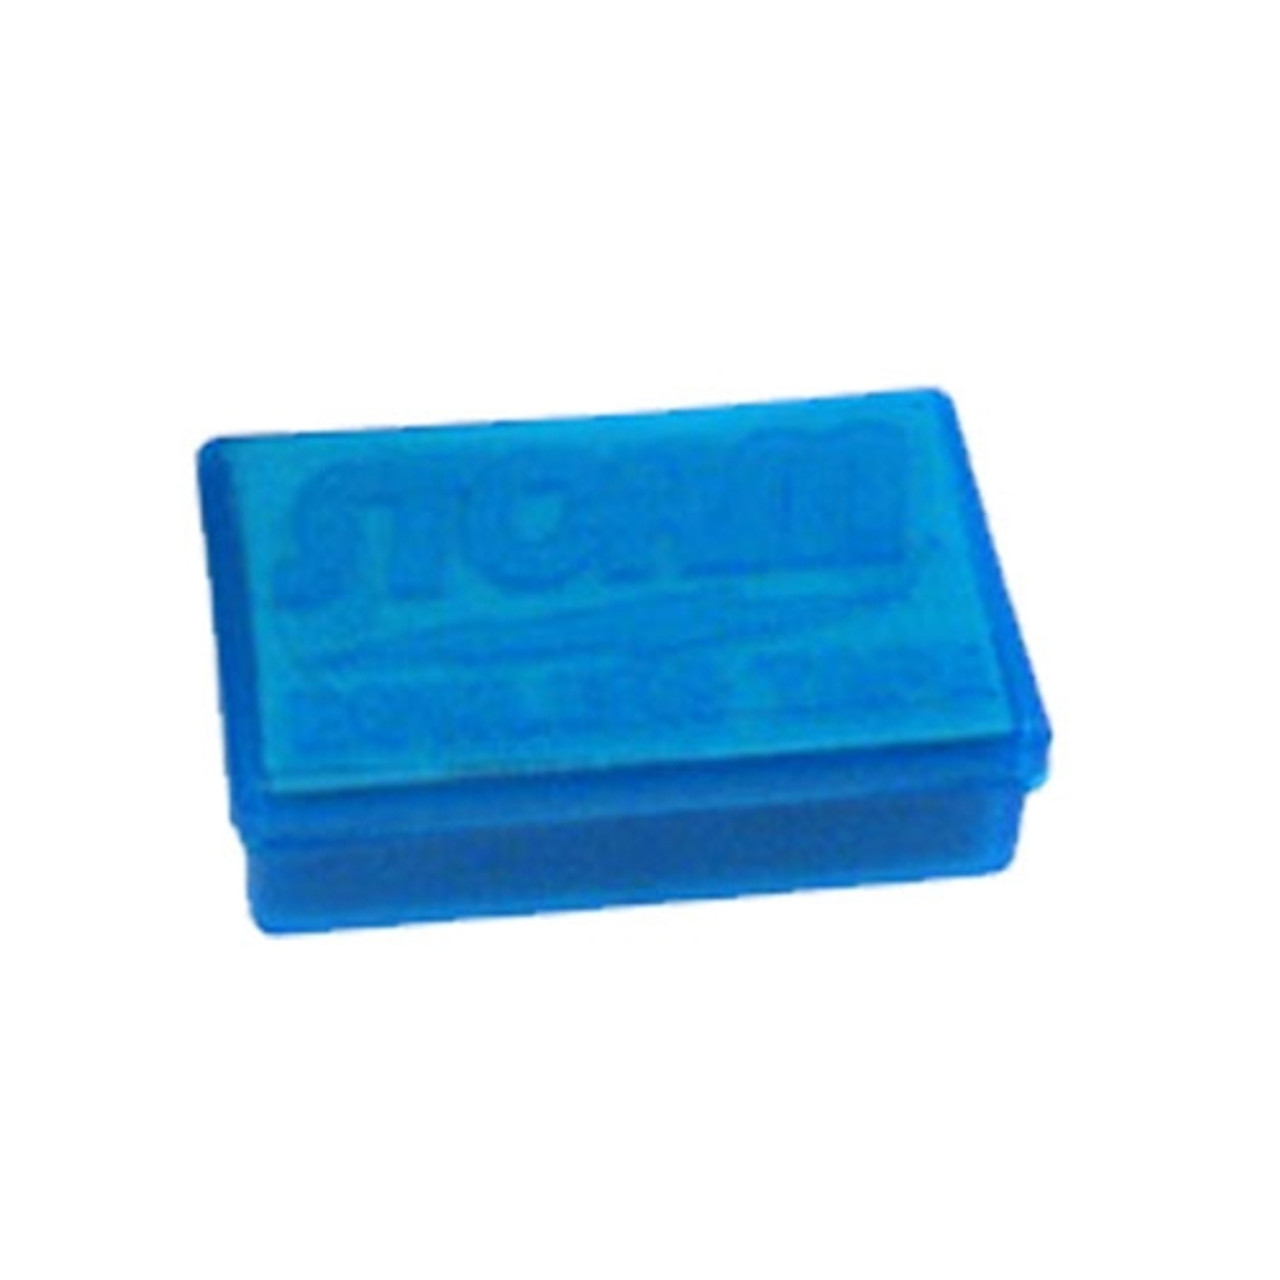 Storm Bowler Tape Blue Box White 1 in.